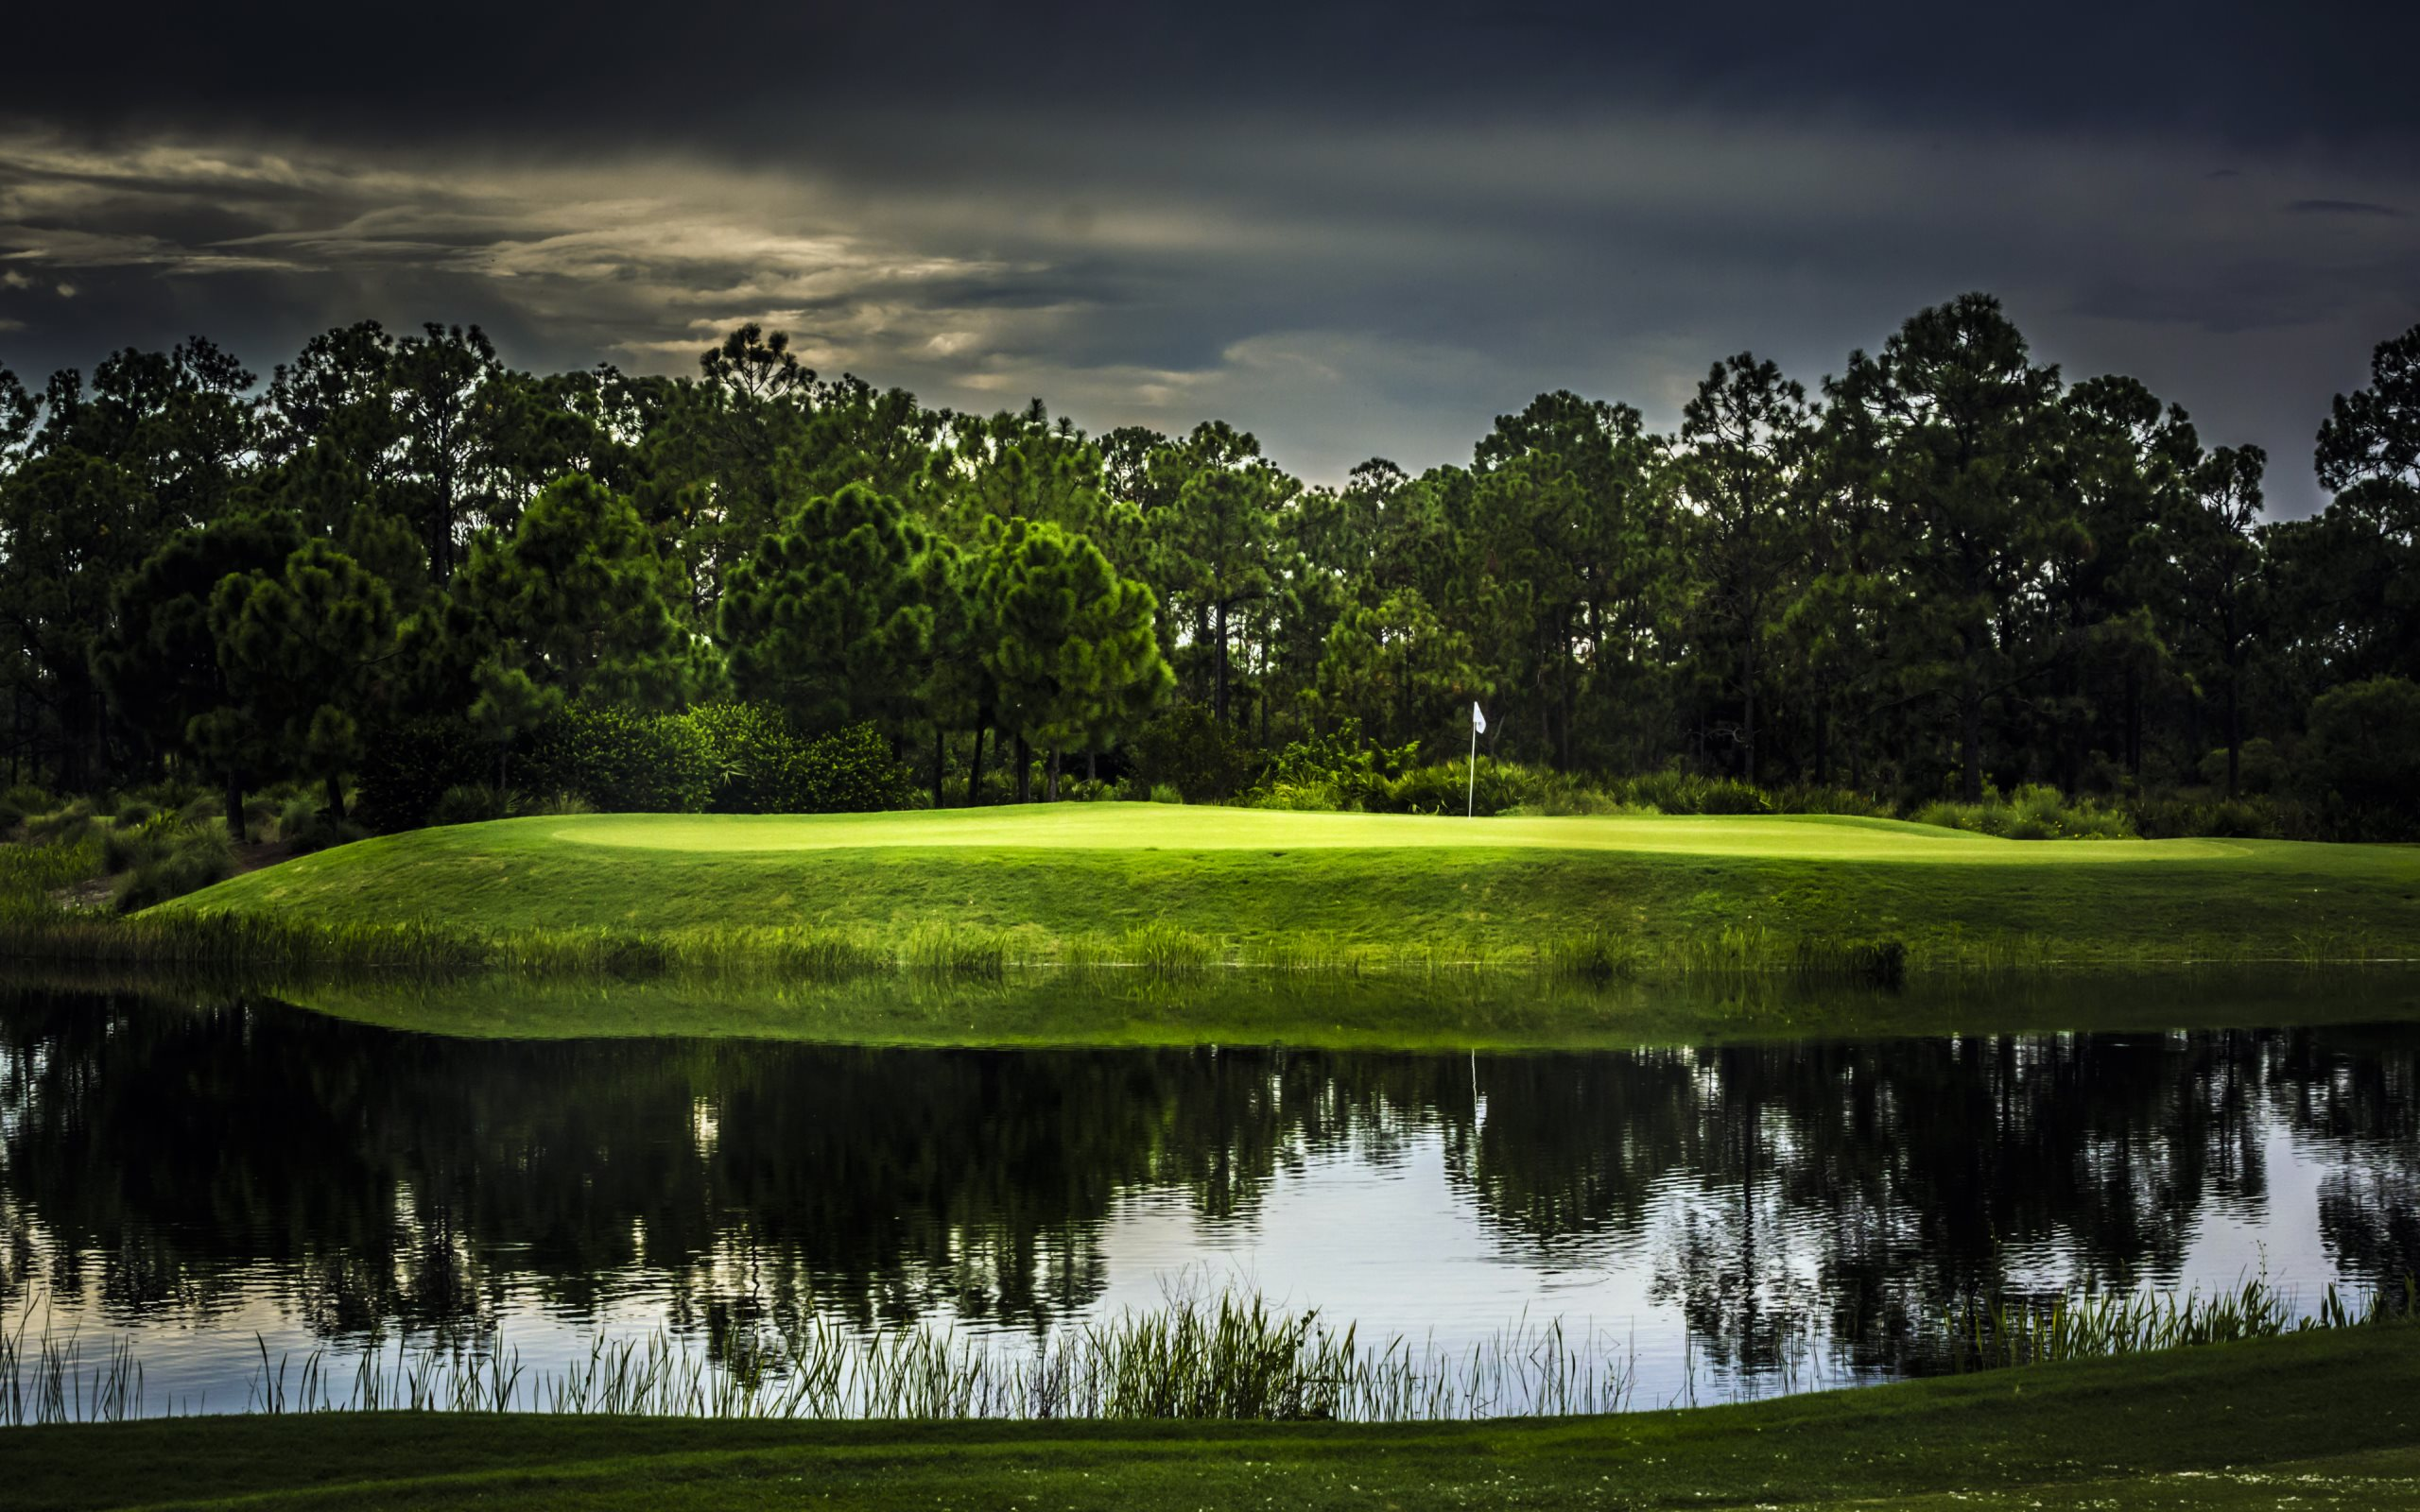 Golf Course Pics Wallpaper, 37 Golf Course Wallpapers, ID:589KO